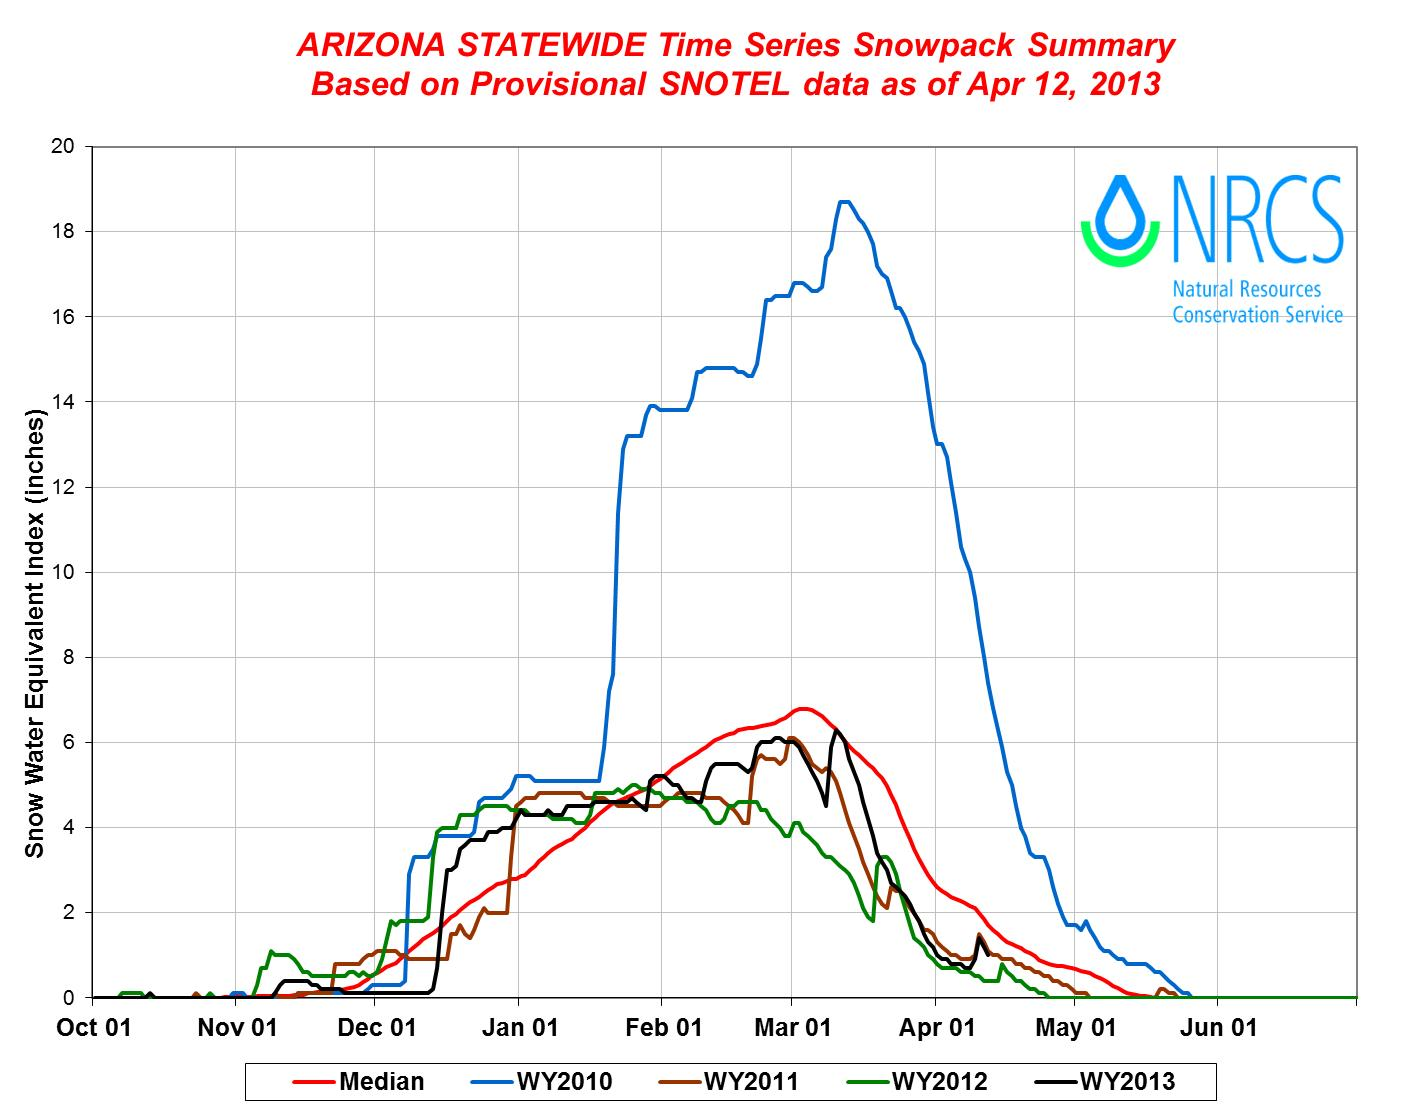 Time Series Snowpack Summary